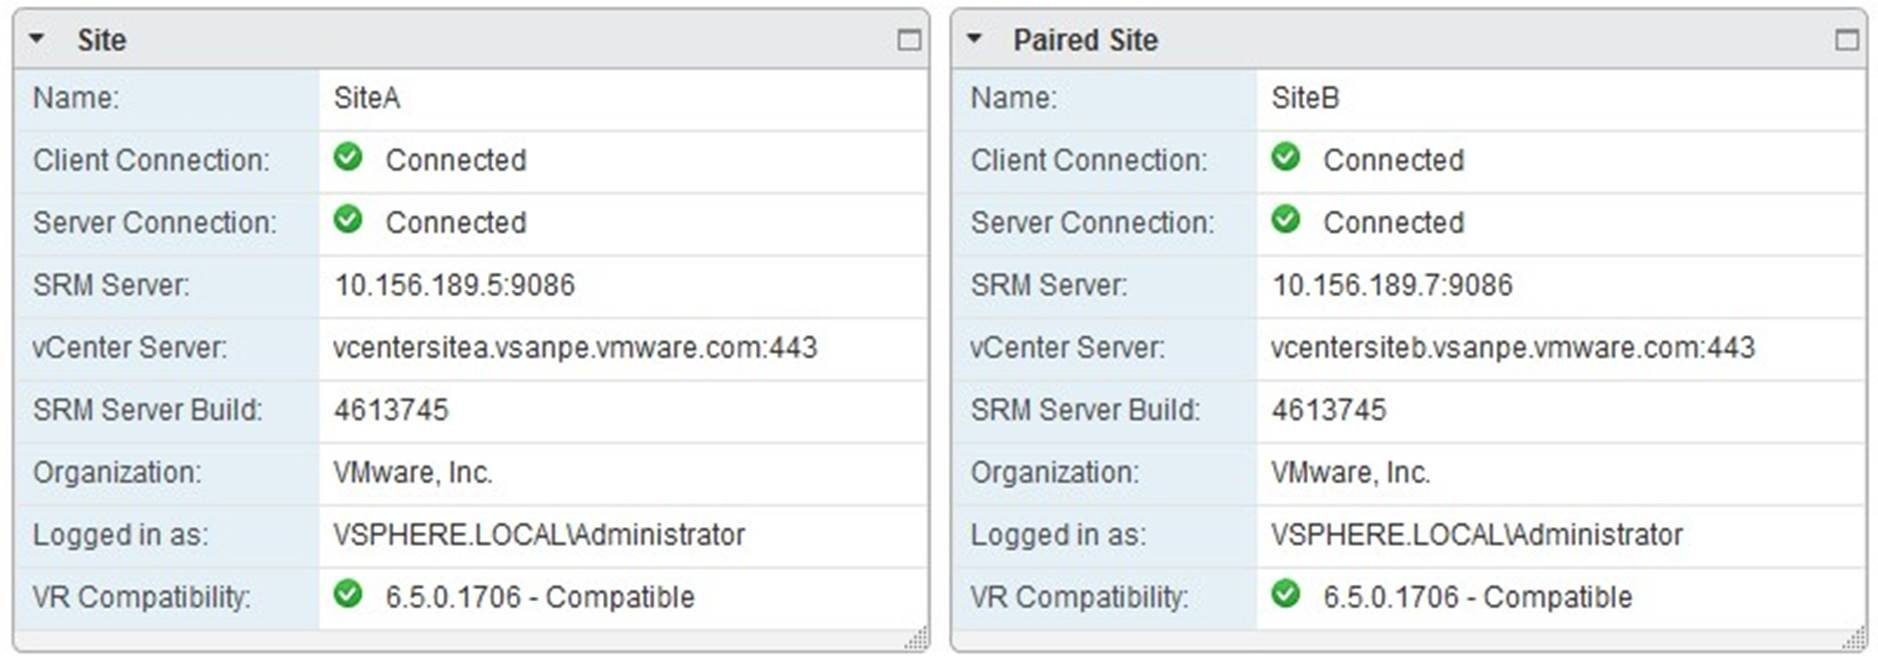 Paired Sites in vSphere Web Client